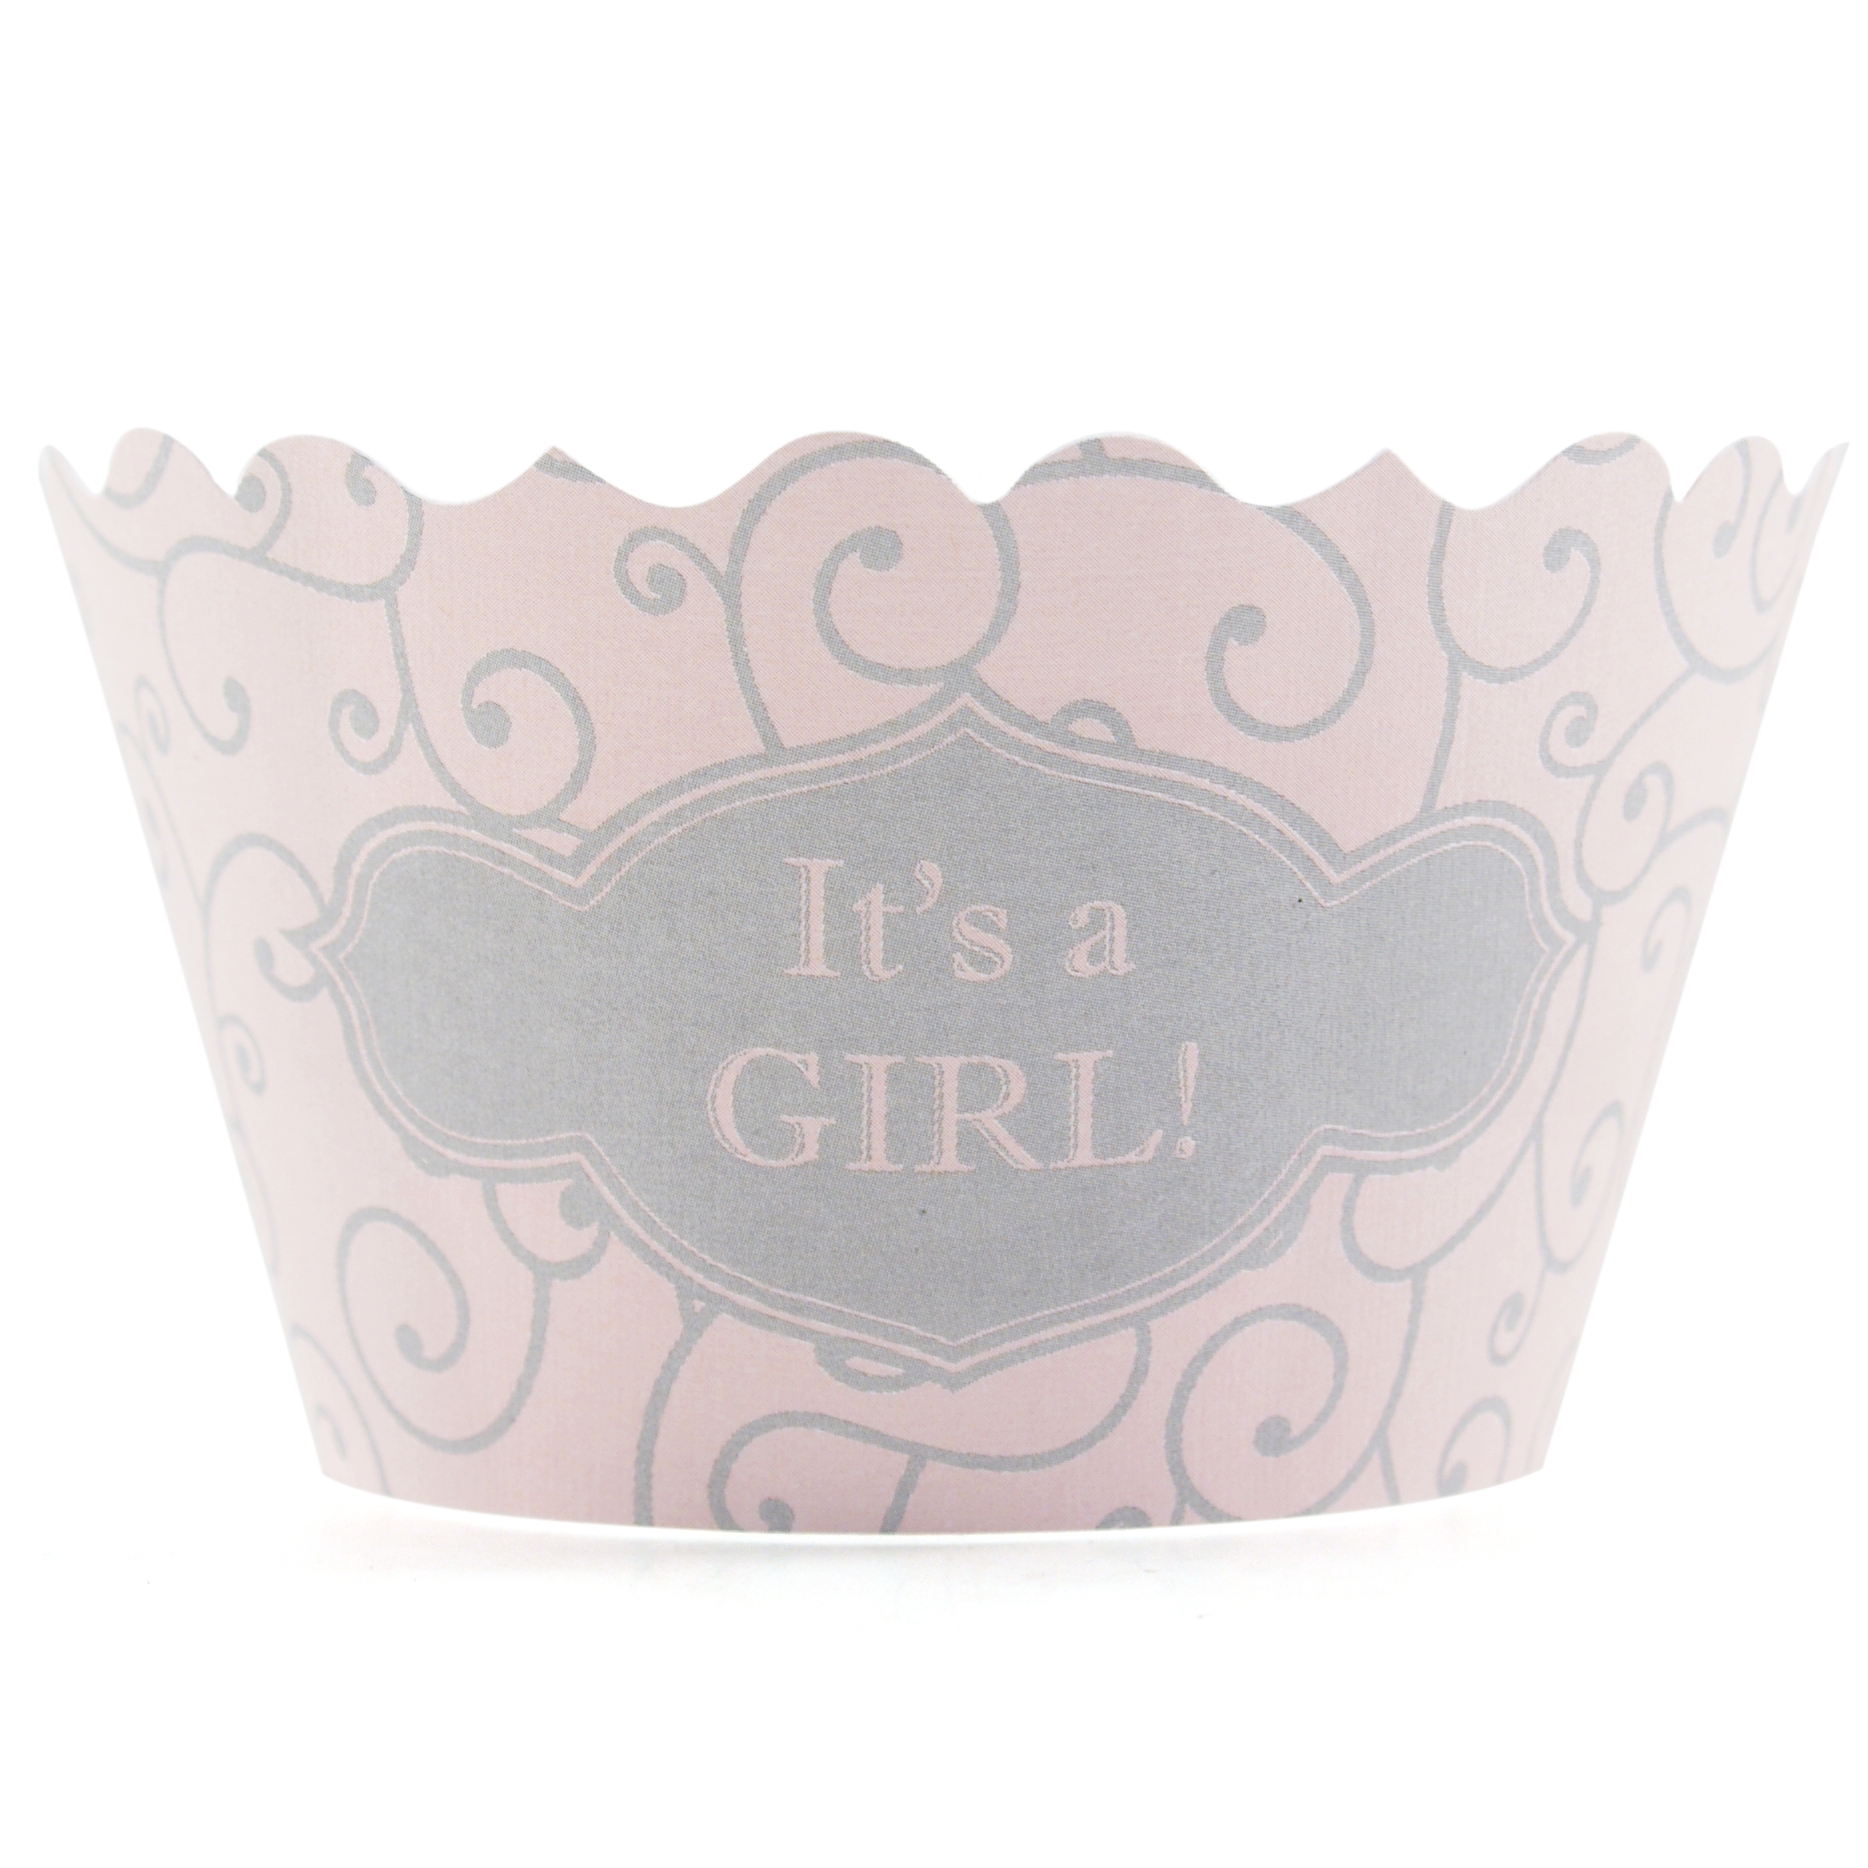 Bella Cupcake Couture It's a Girl Cupcake Wrapper, Set of 12